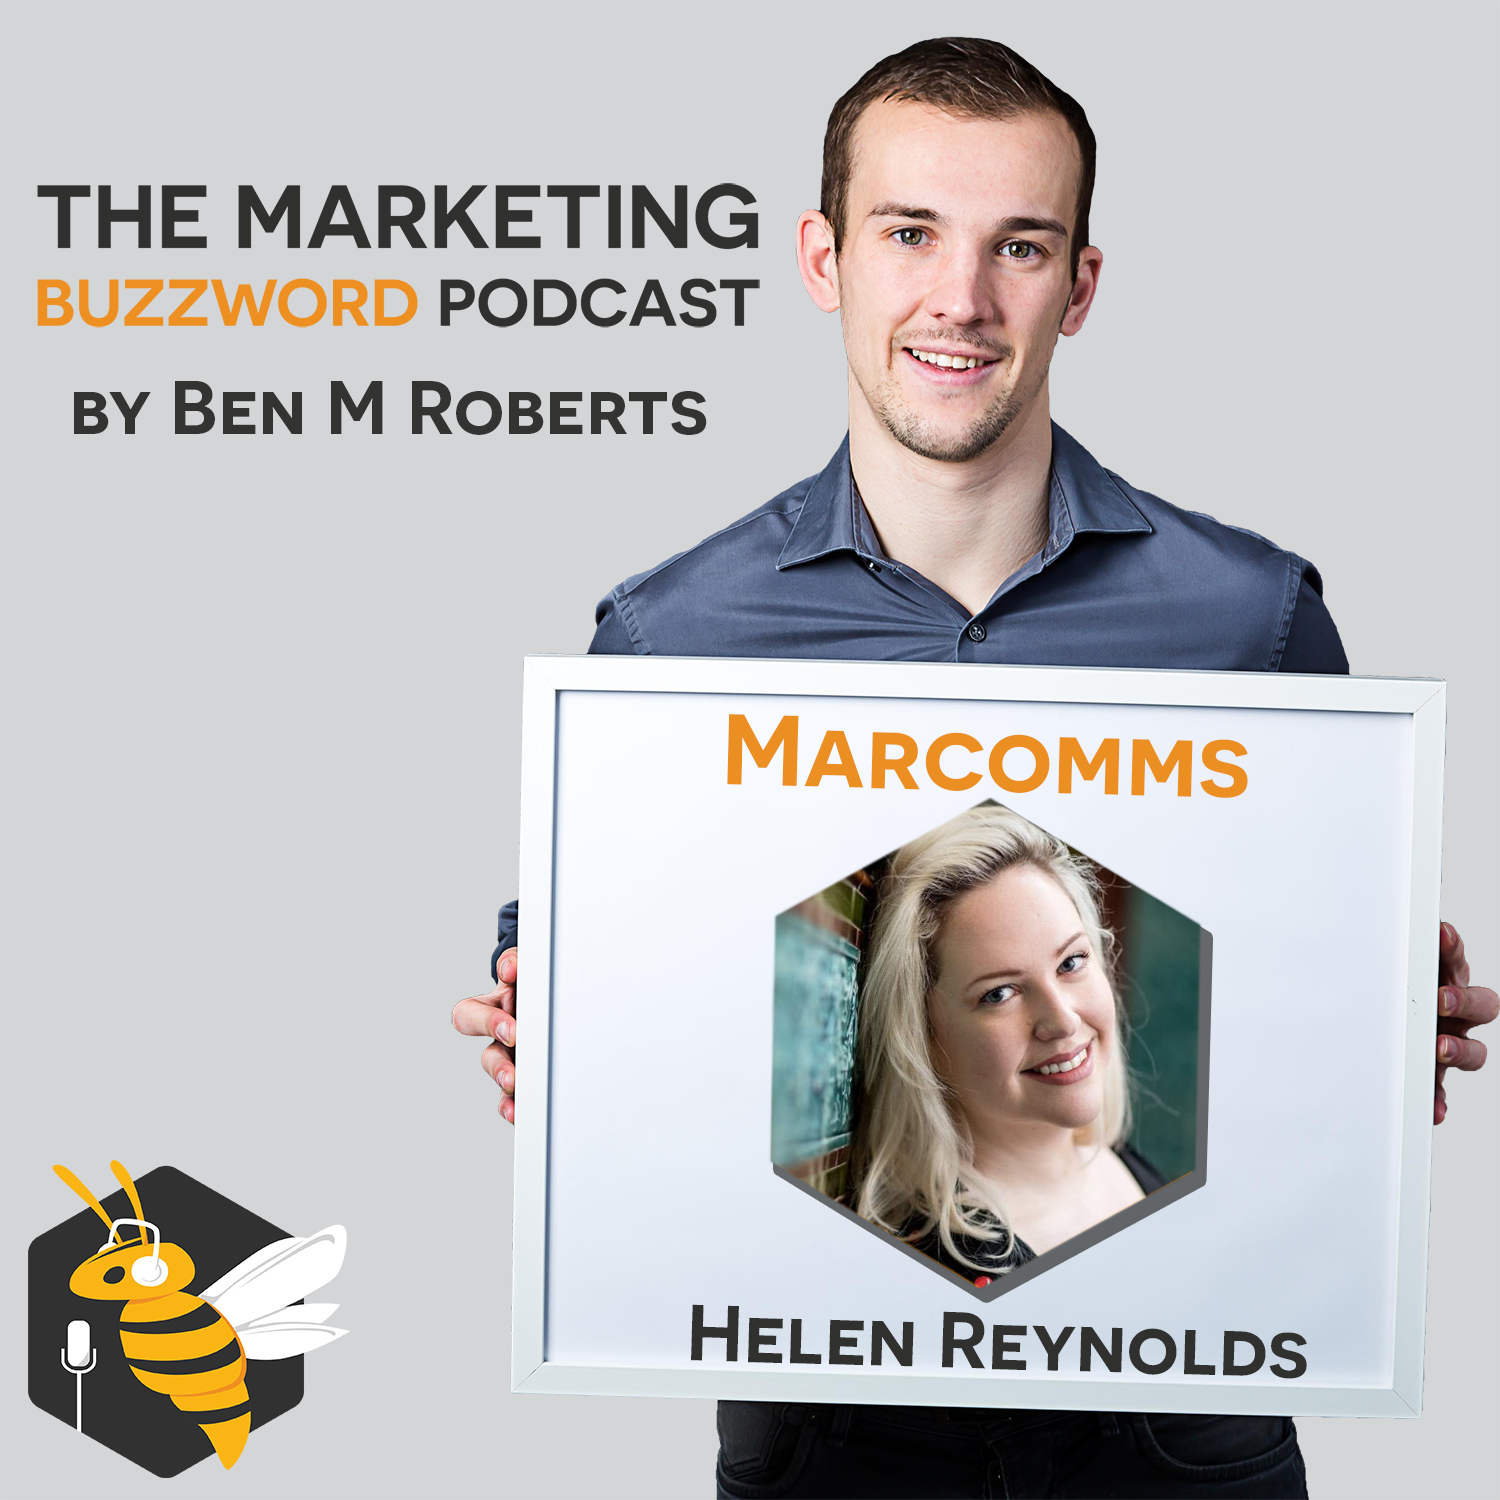 Marcomms - What is Marcomms? How can break down the divisions between marketing and communications? How can marketers and communicators work together to be more effective?